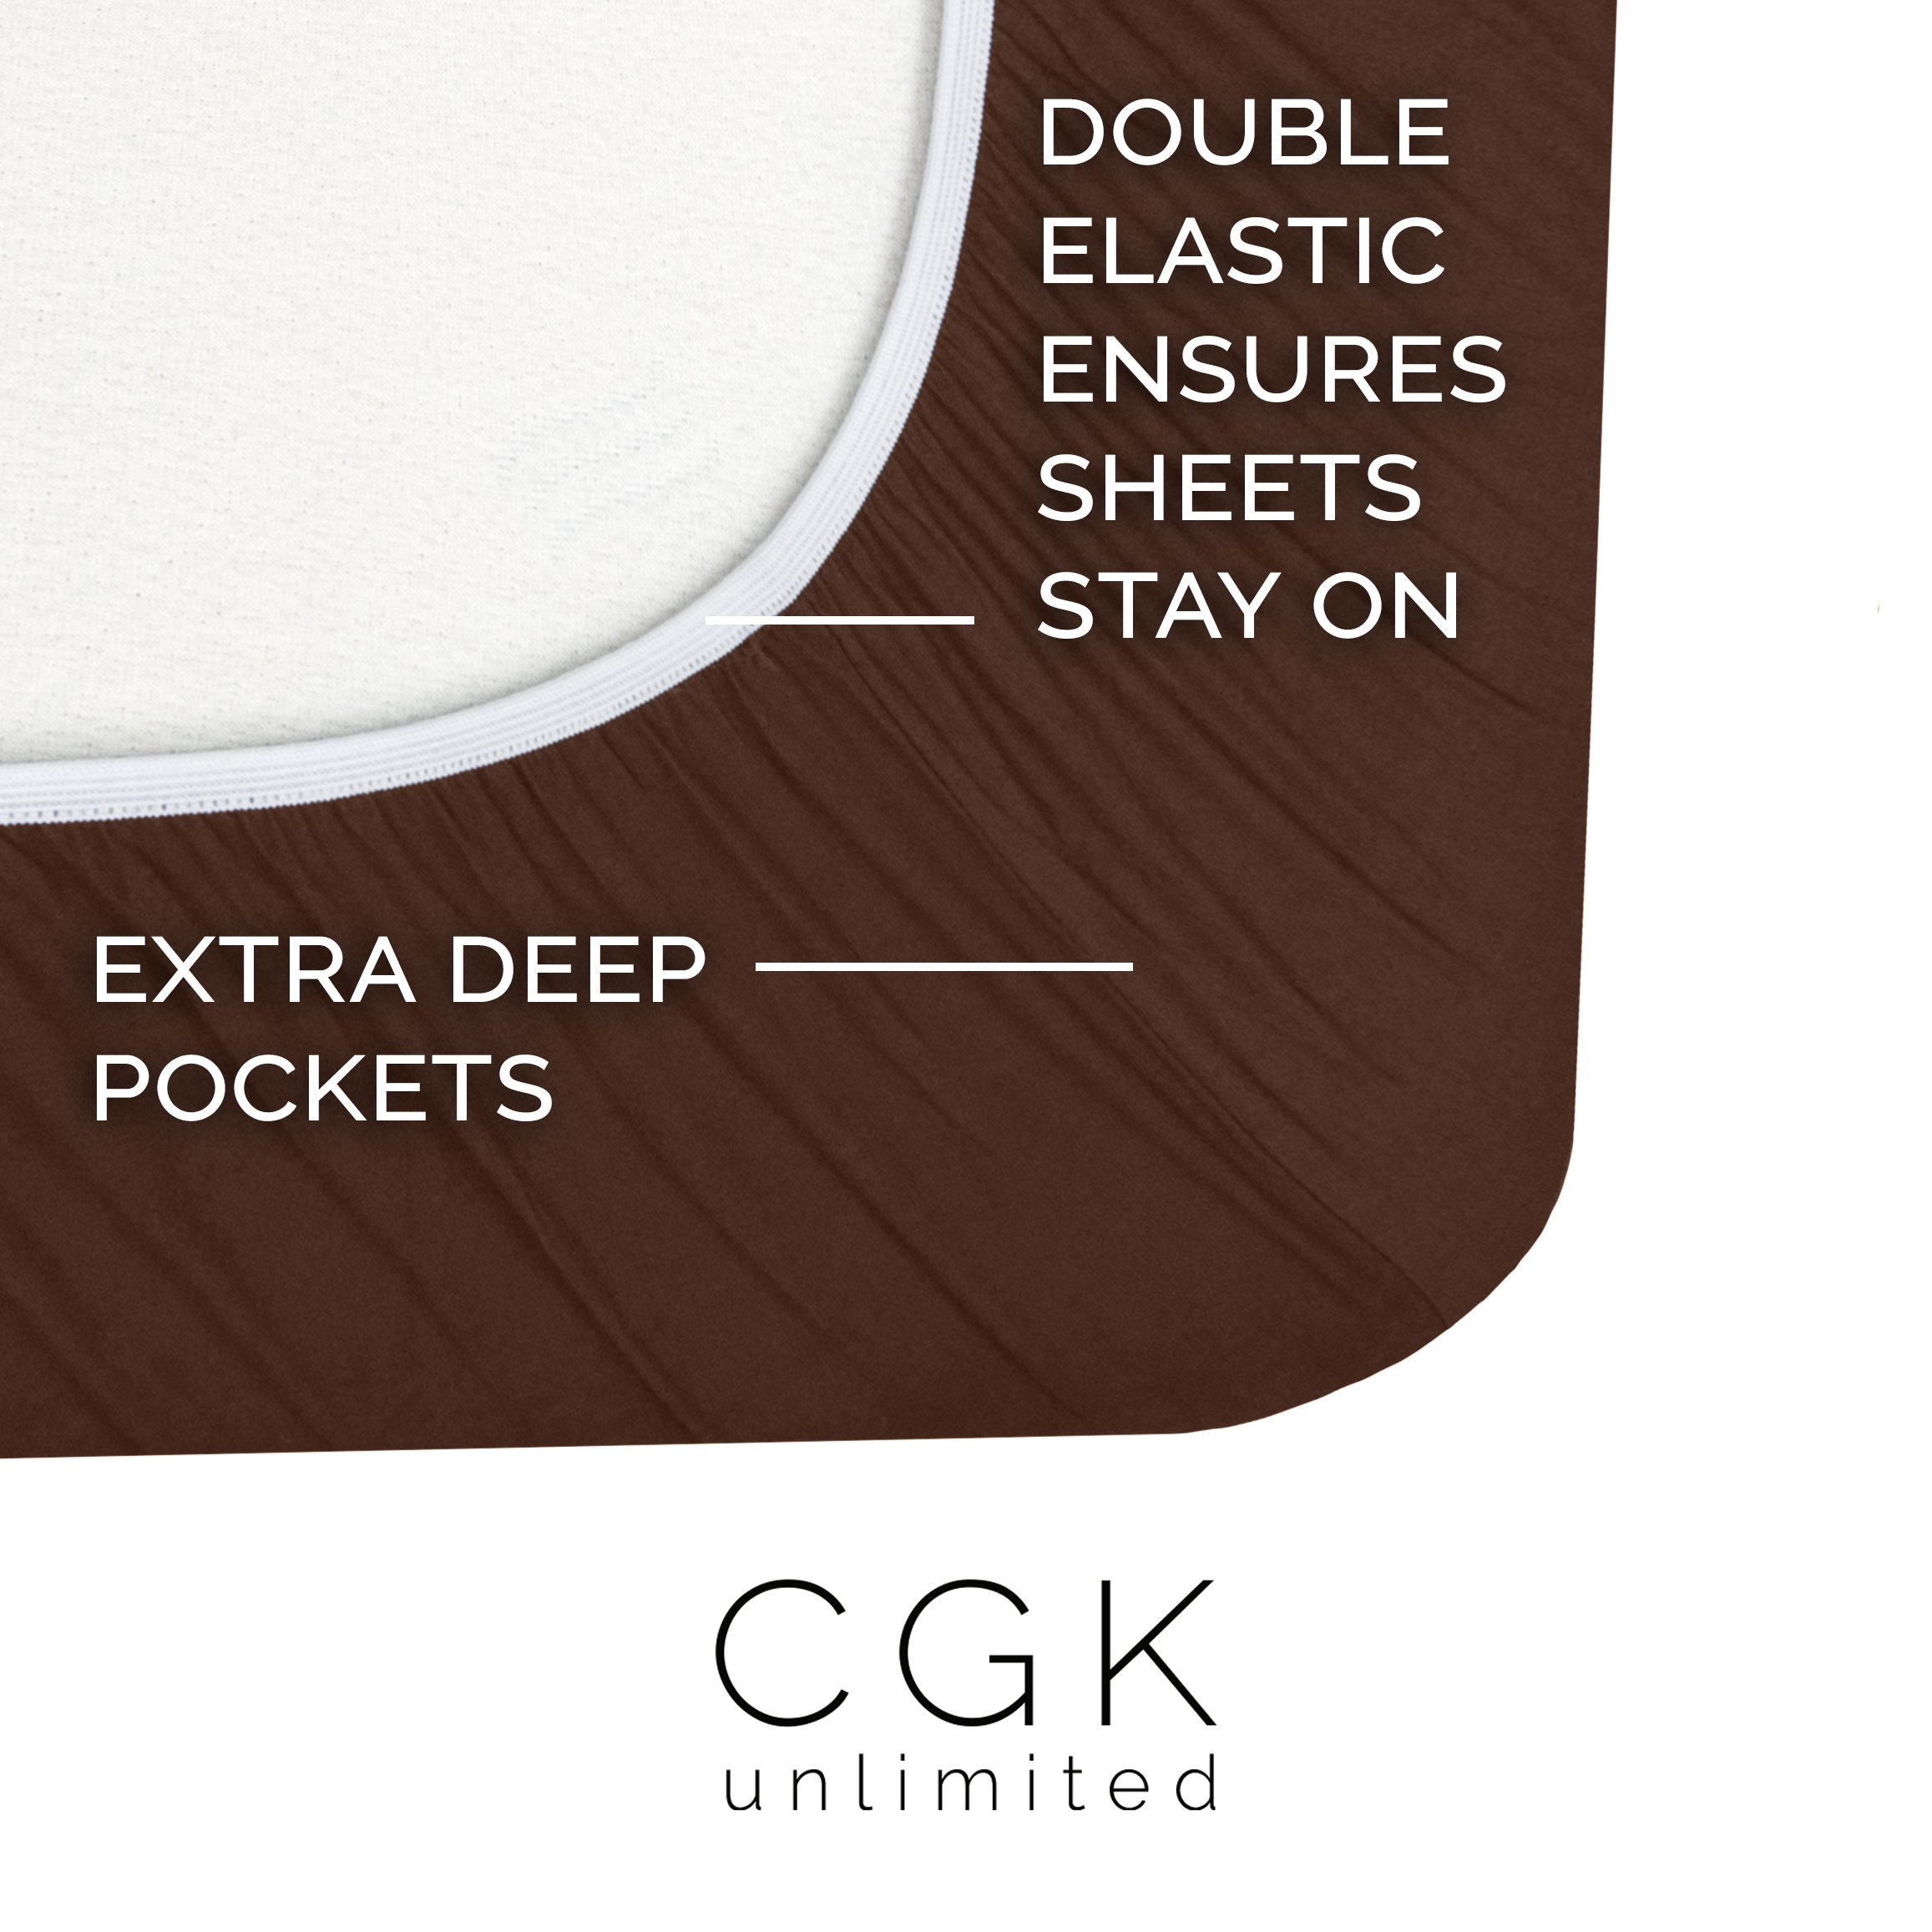 Twin XL Sheet Set - 3 Piece - Fits College Dorm Rooms - Hotel Luxury Bed Sheets - Extra Soft - Deep Pockets - Easy Fit - Breathable & Cooling - Brown Chocolate Bed Sheets - Twins by CGK Unlimited (Image #2)